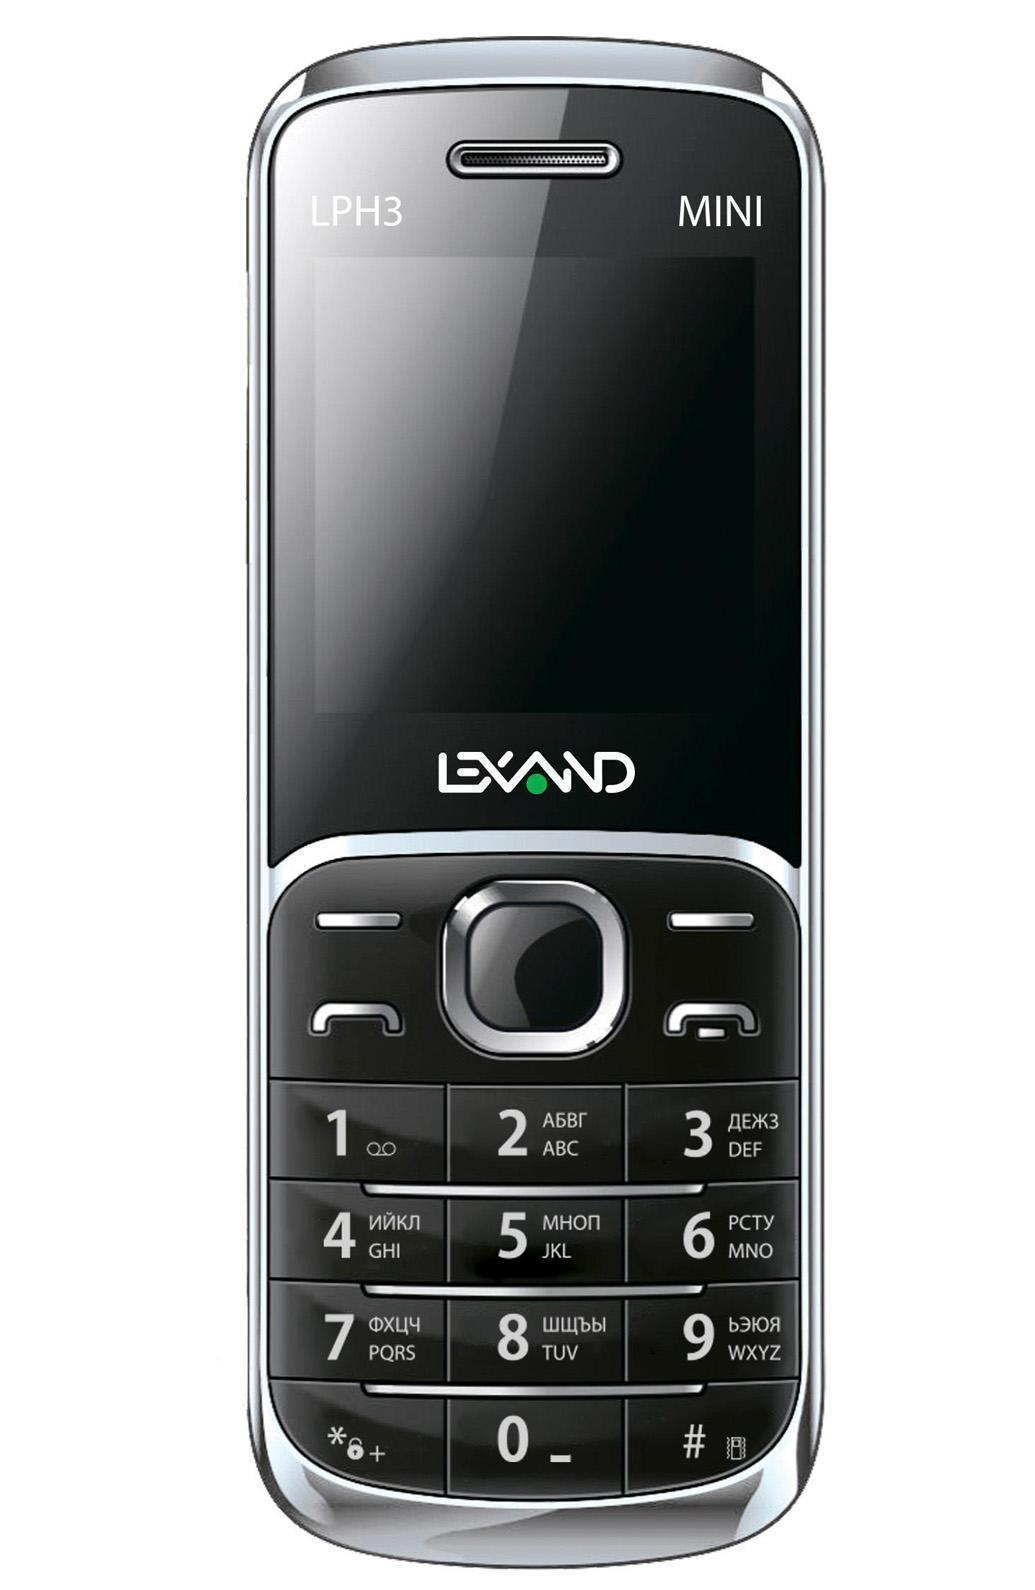 Lexand LPH3 Mini, Black